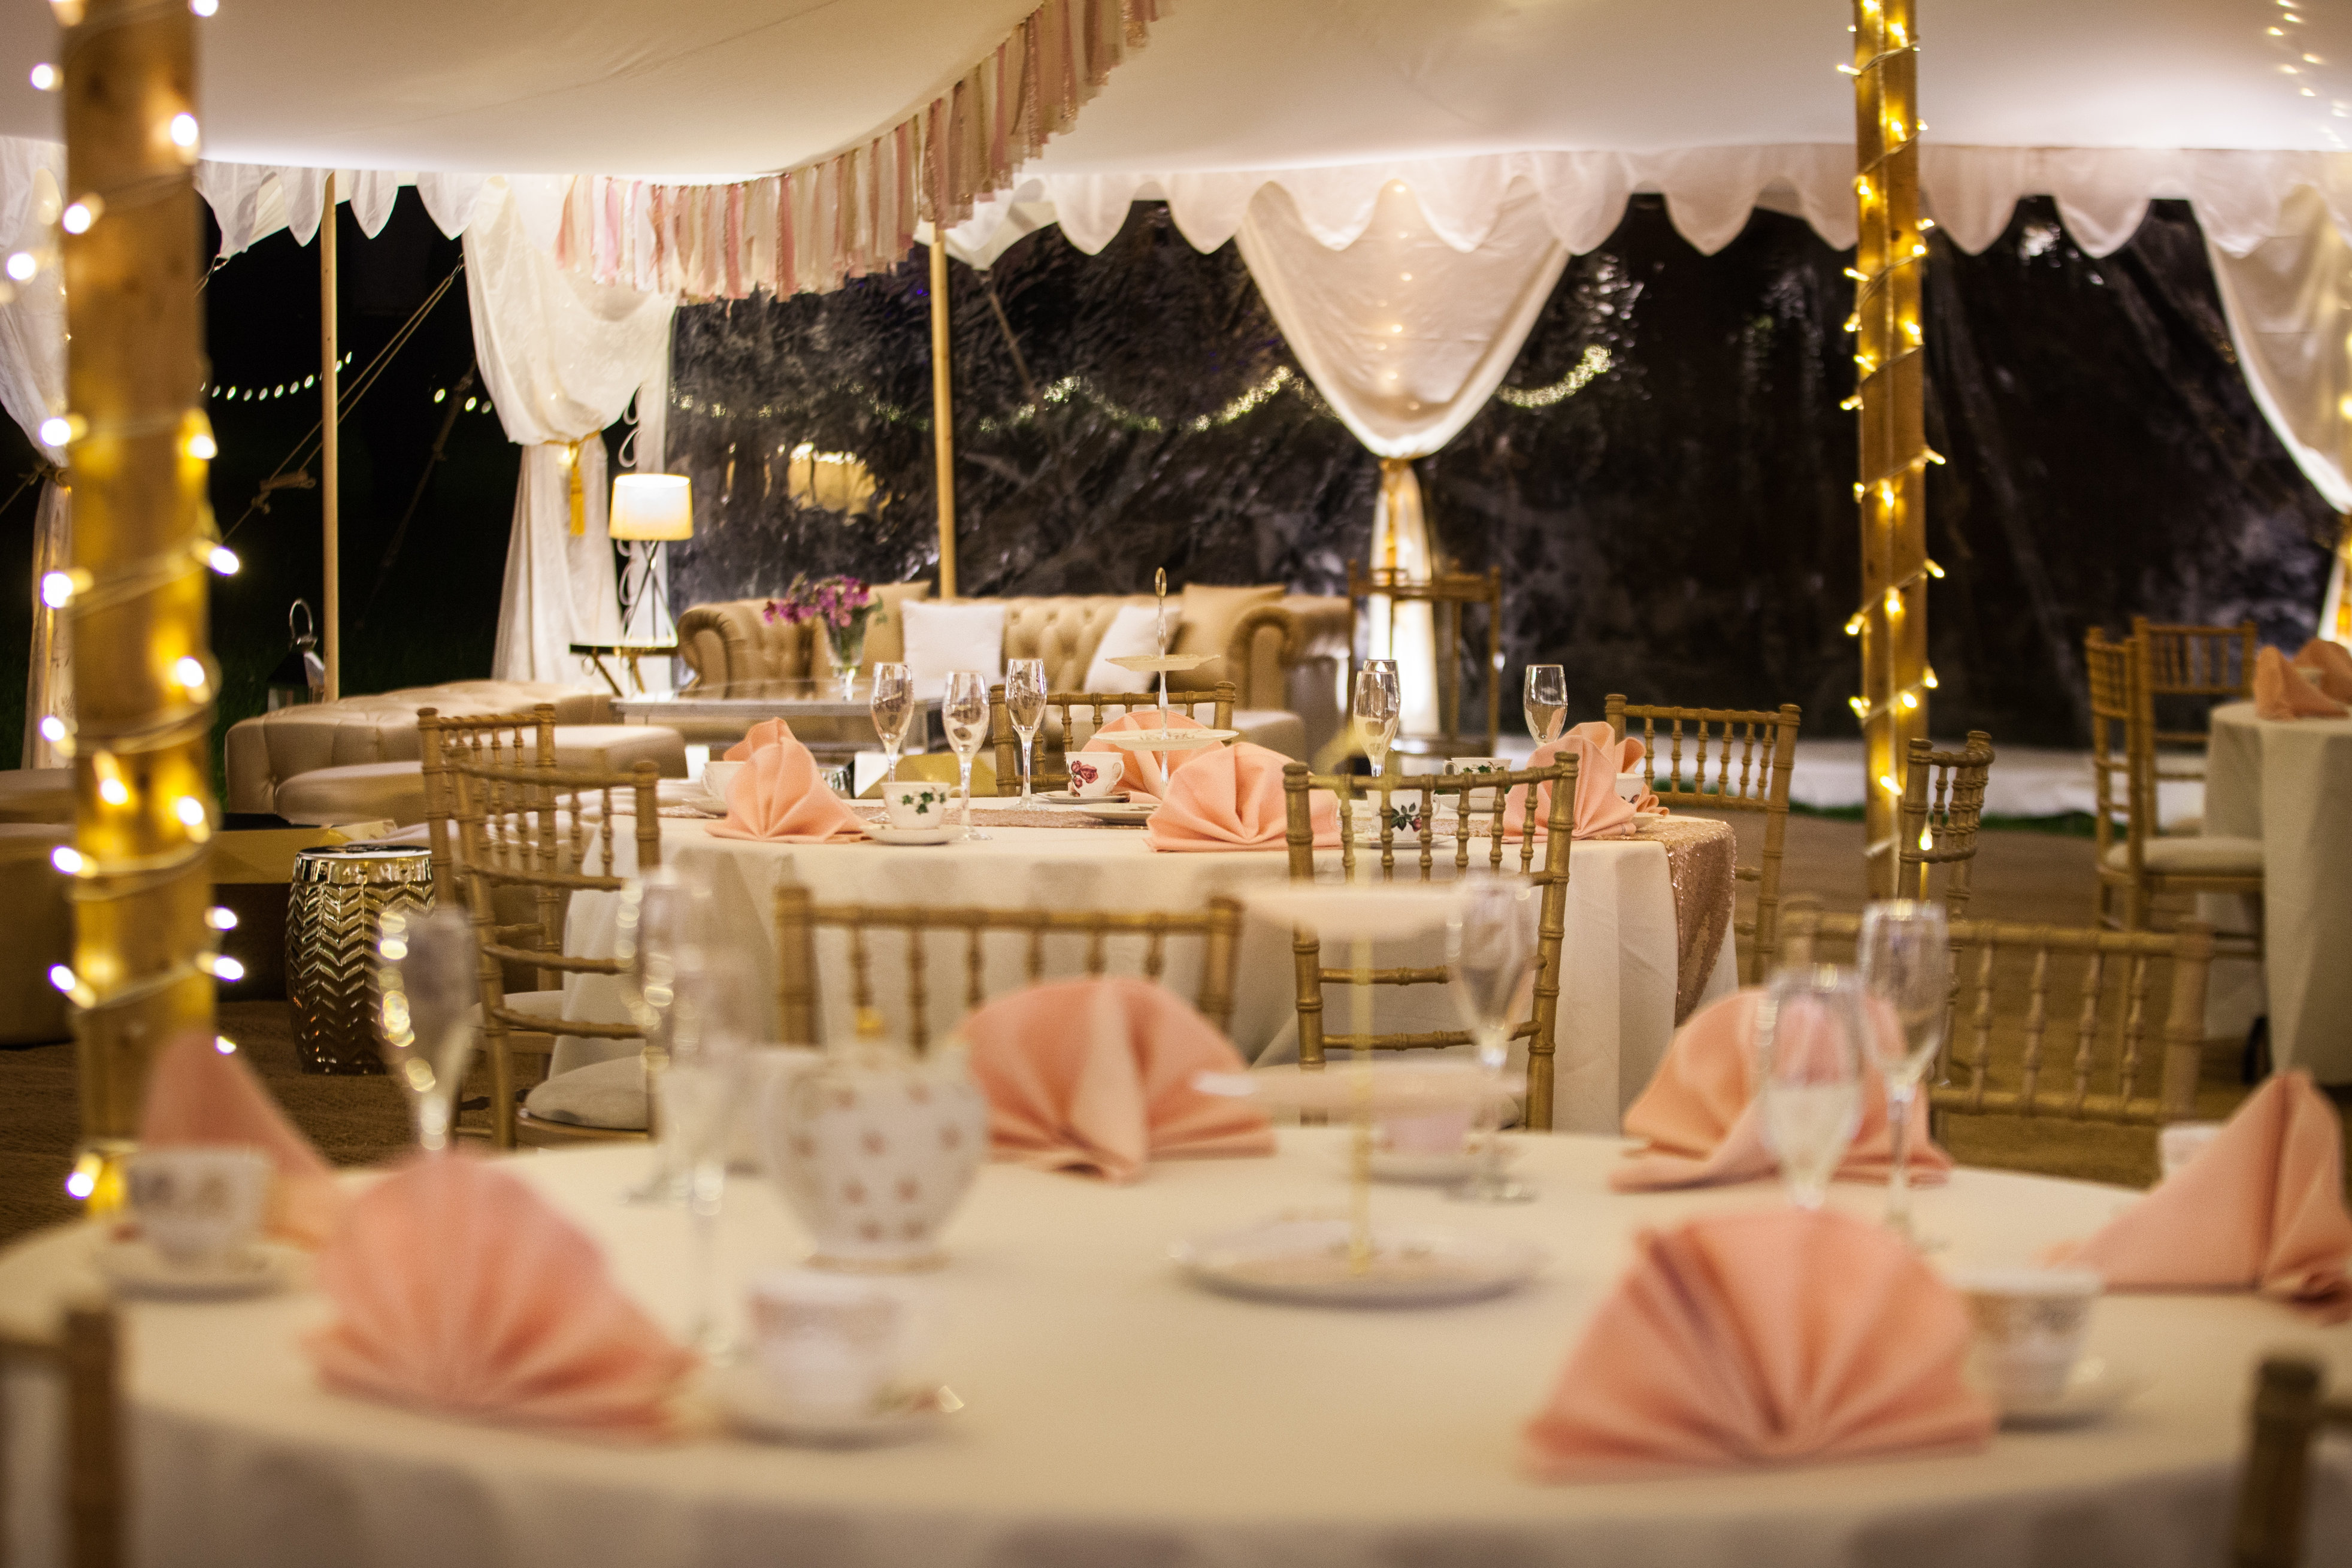 1920s themed party ideas the arabian tent company for 1920s decoration ideas